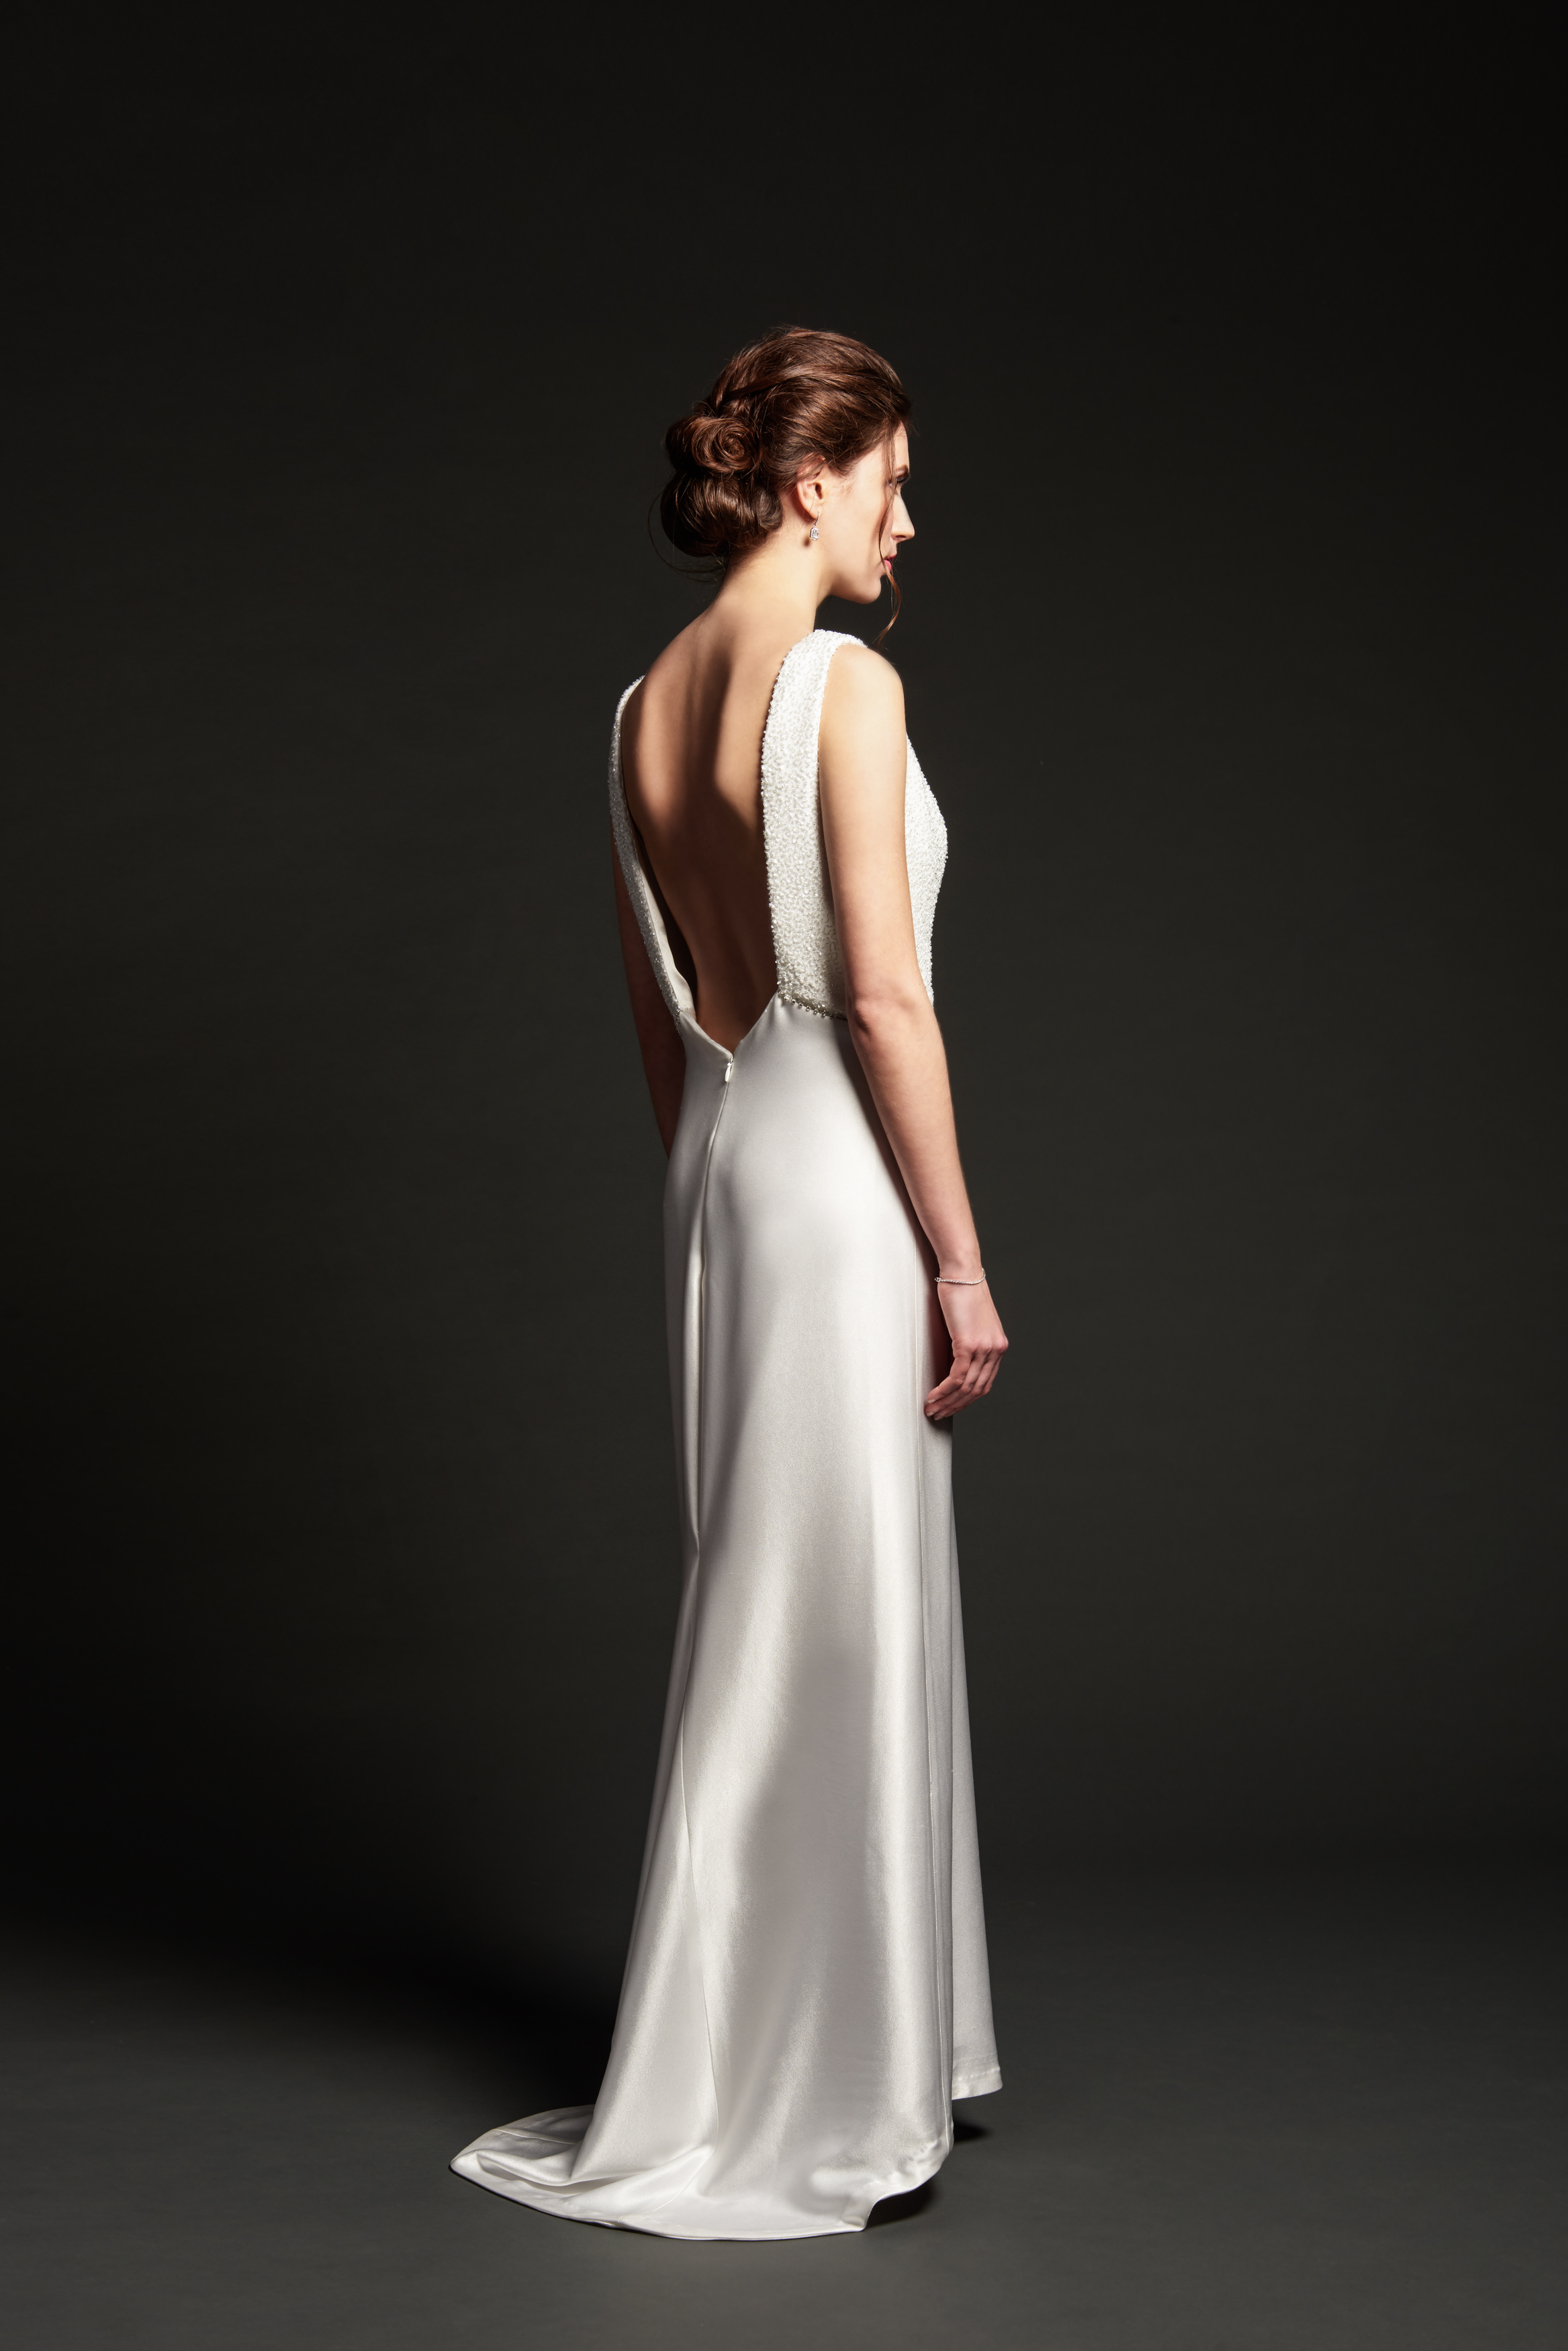 160213_GEMMA LEAKEY BRIDAL - DRESS 05-02.jpg